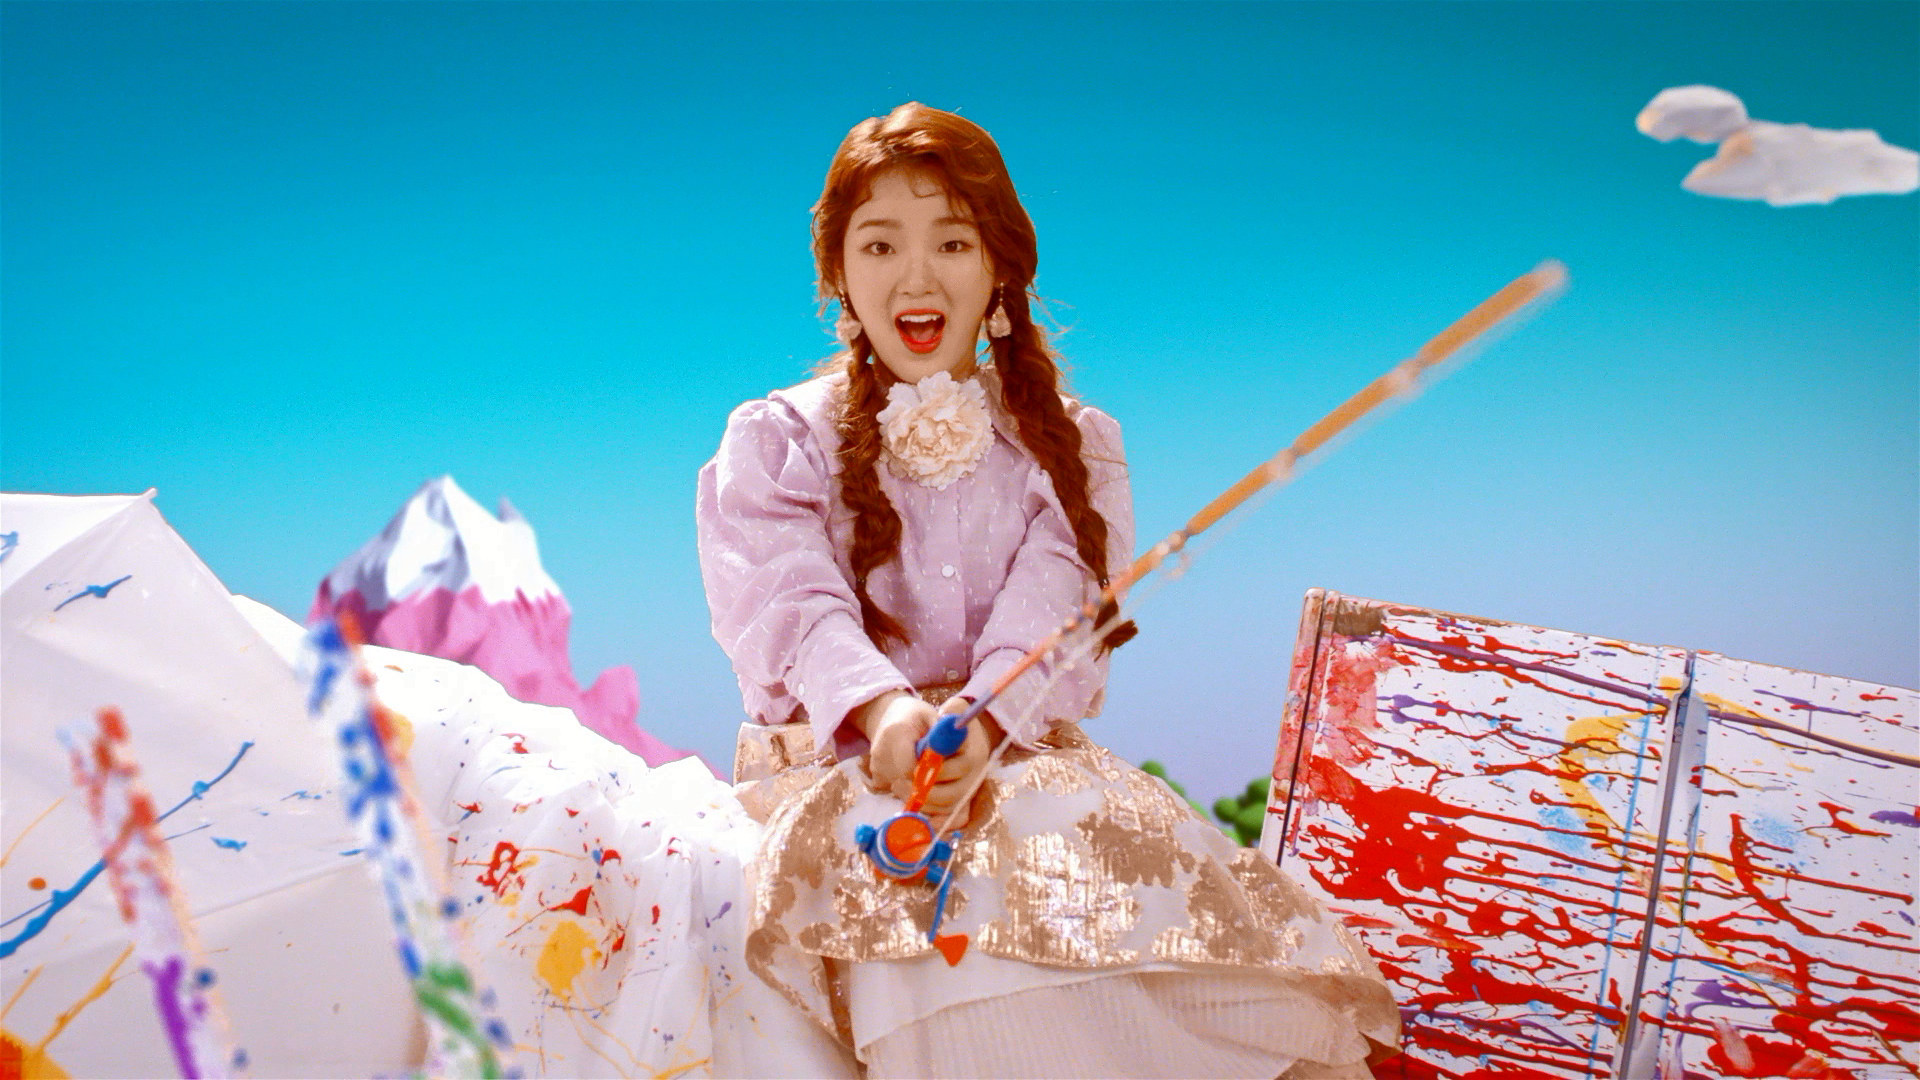 coloring book oh my girl mv fun coloring pages OH My Girl Coloring Book Live Outfit  Coloring Book Oh My Girl Mp3